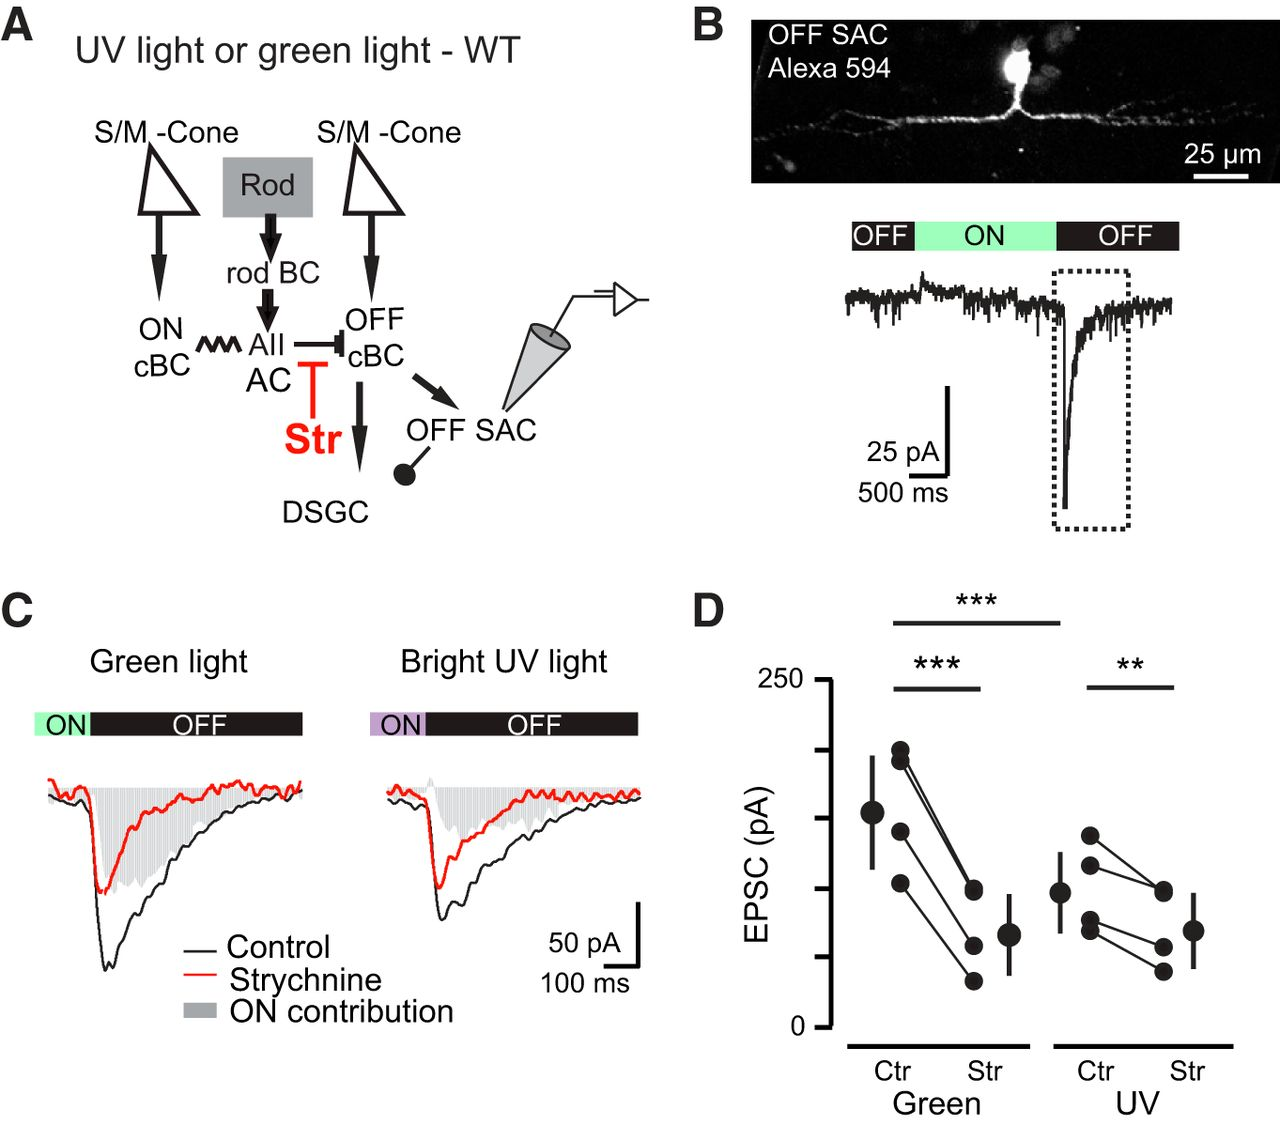 contributions of rod and cone pathways to retinal